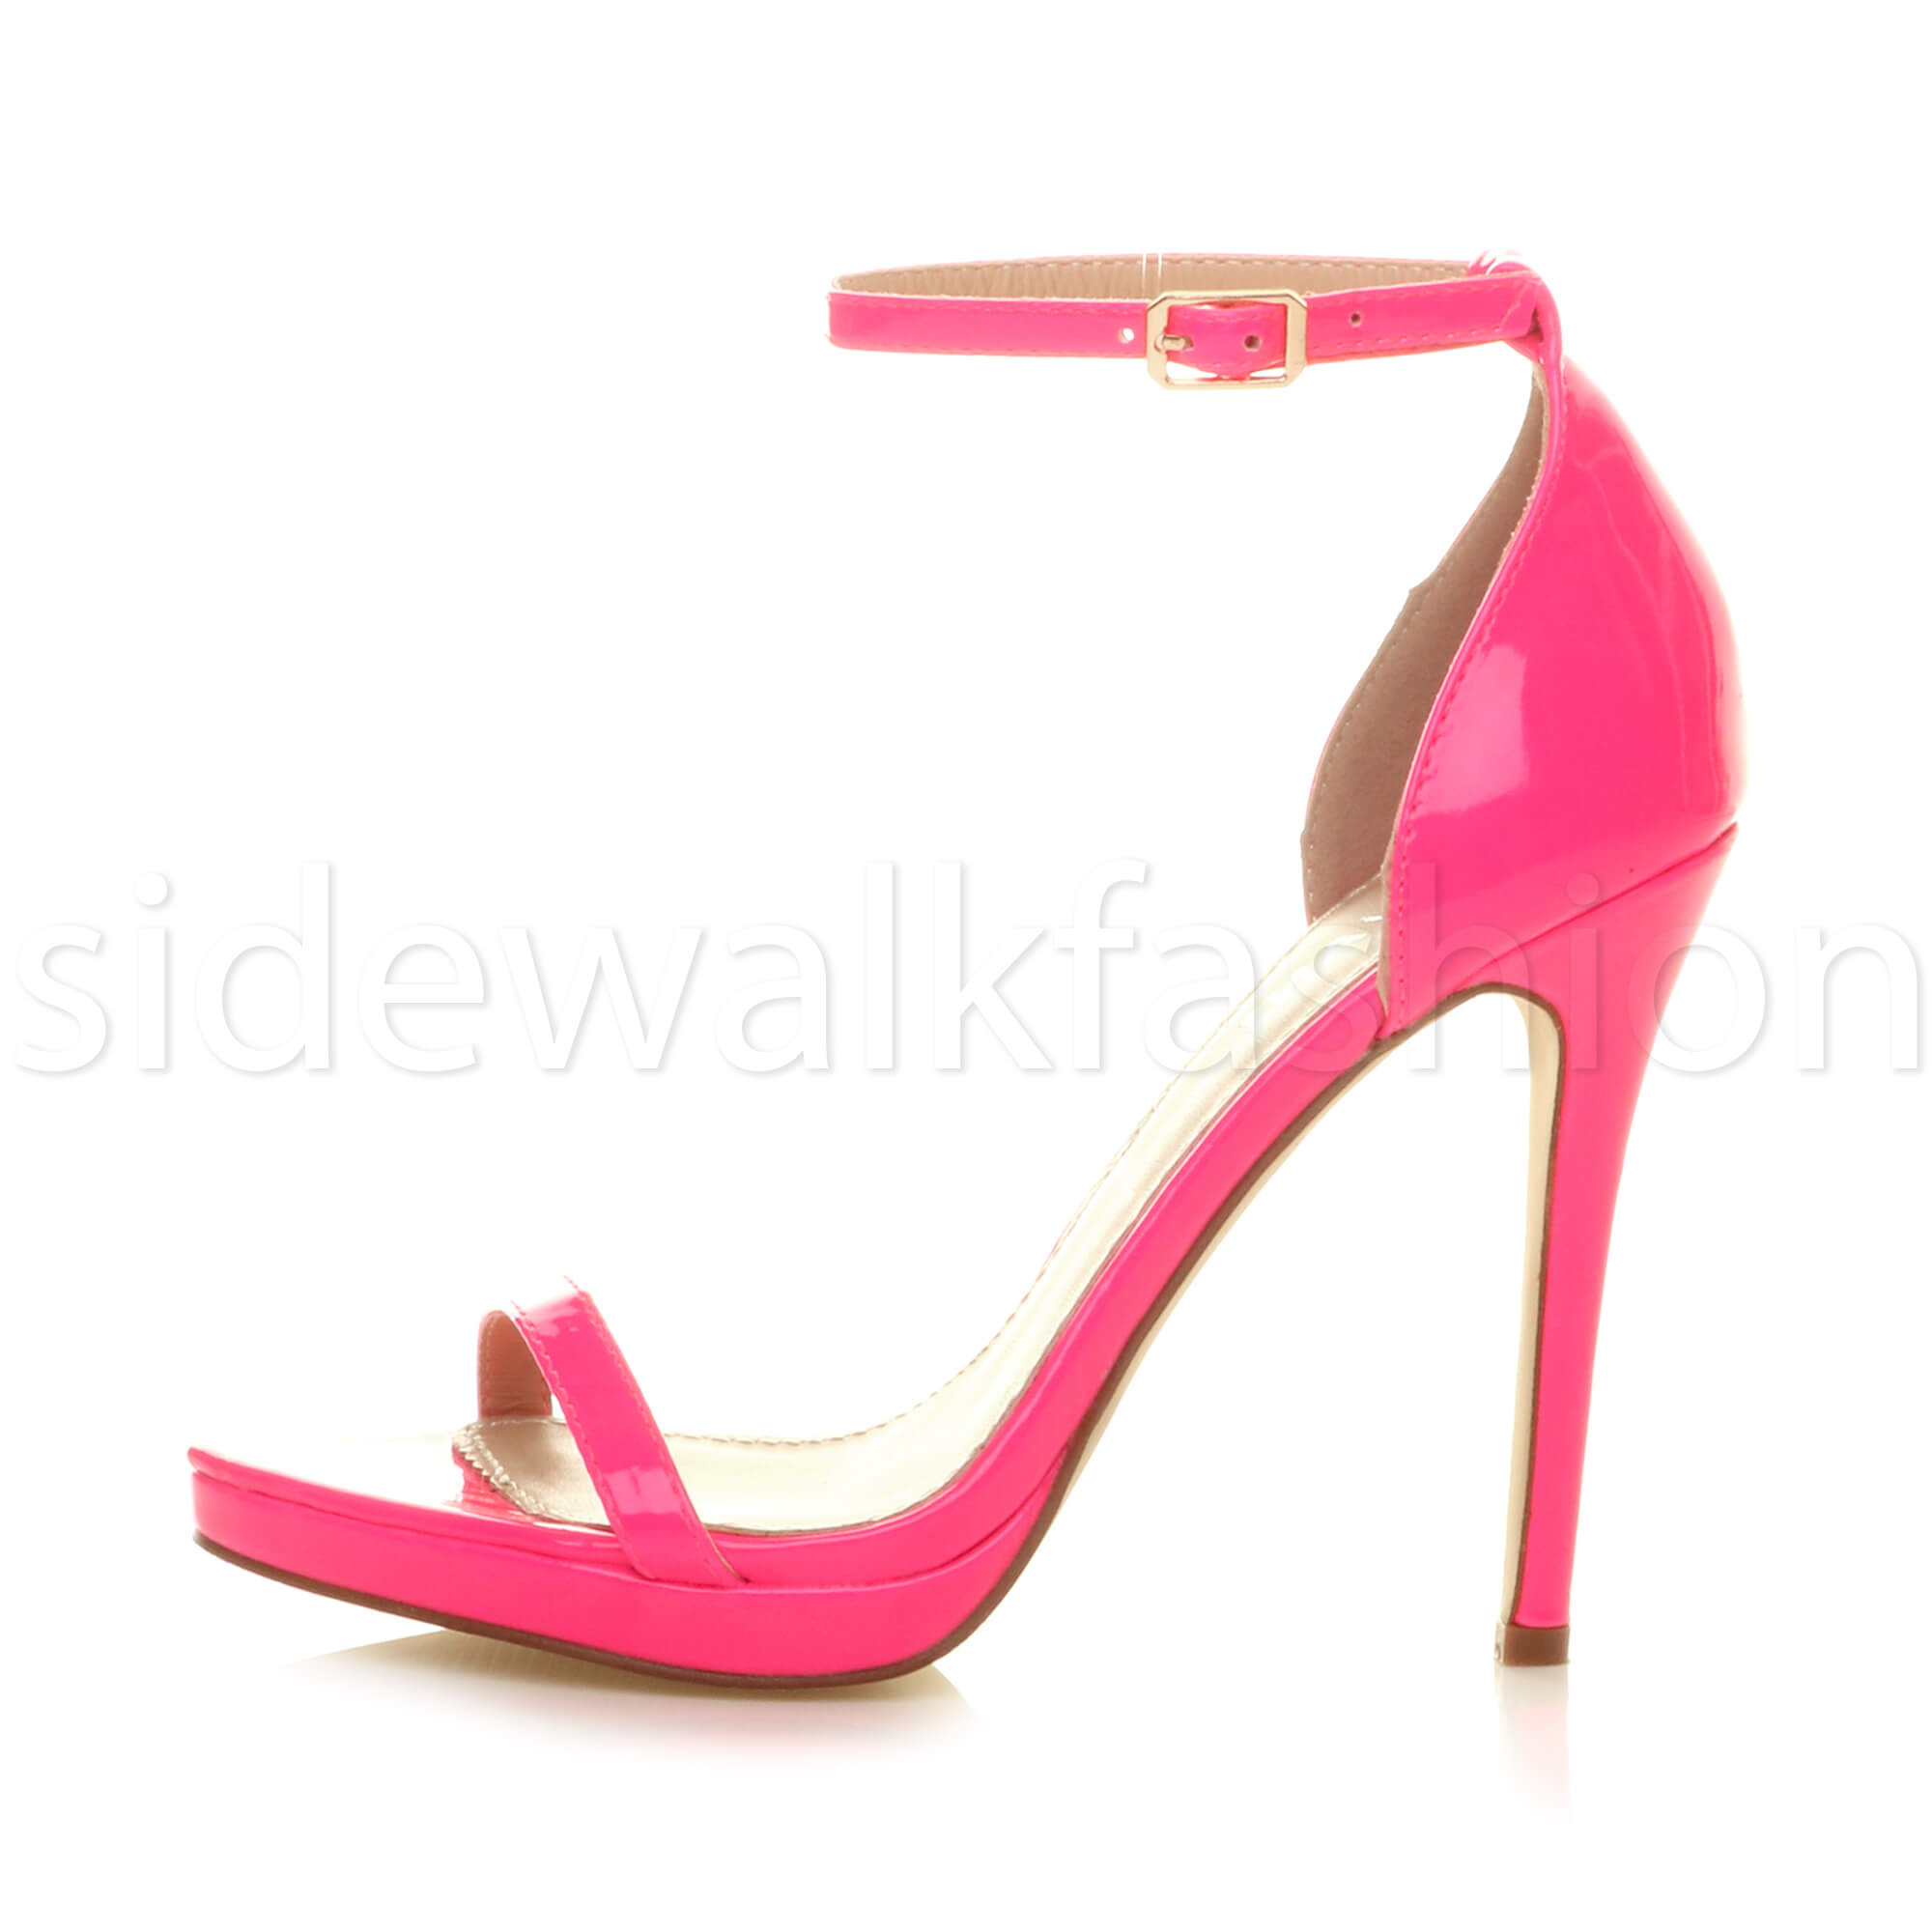 Womens-ladies-high-heel-barely-there-strappy-party-peep-toe-shoes-sandals-size thumbnail 72